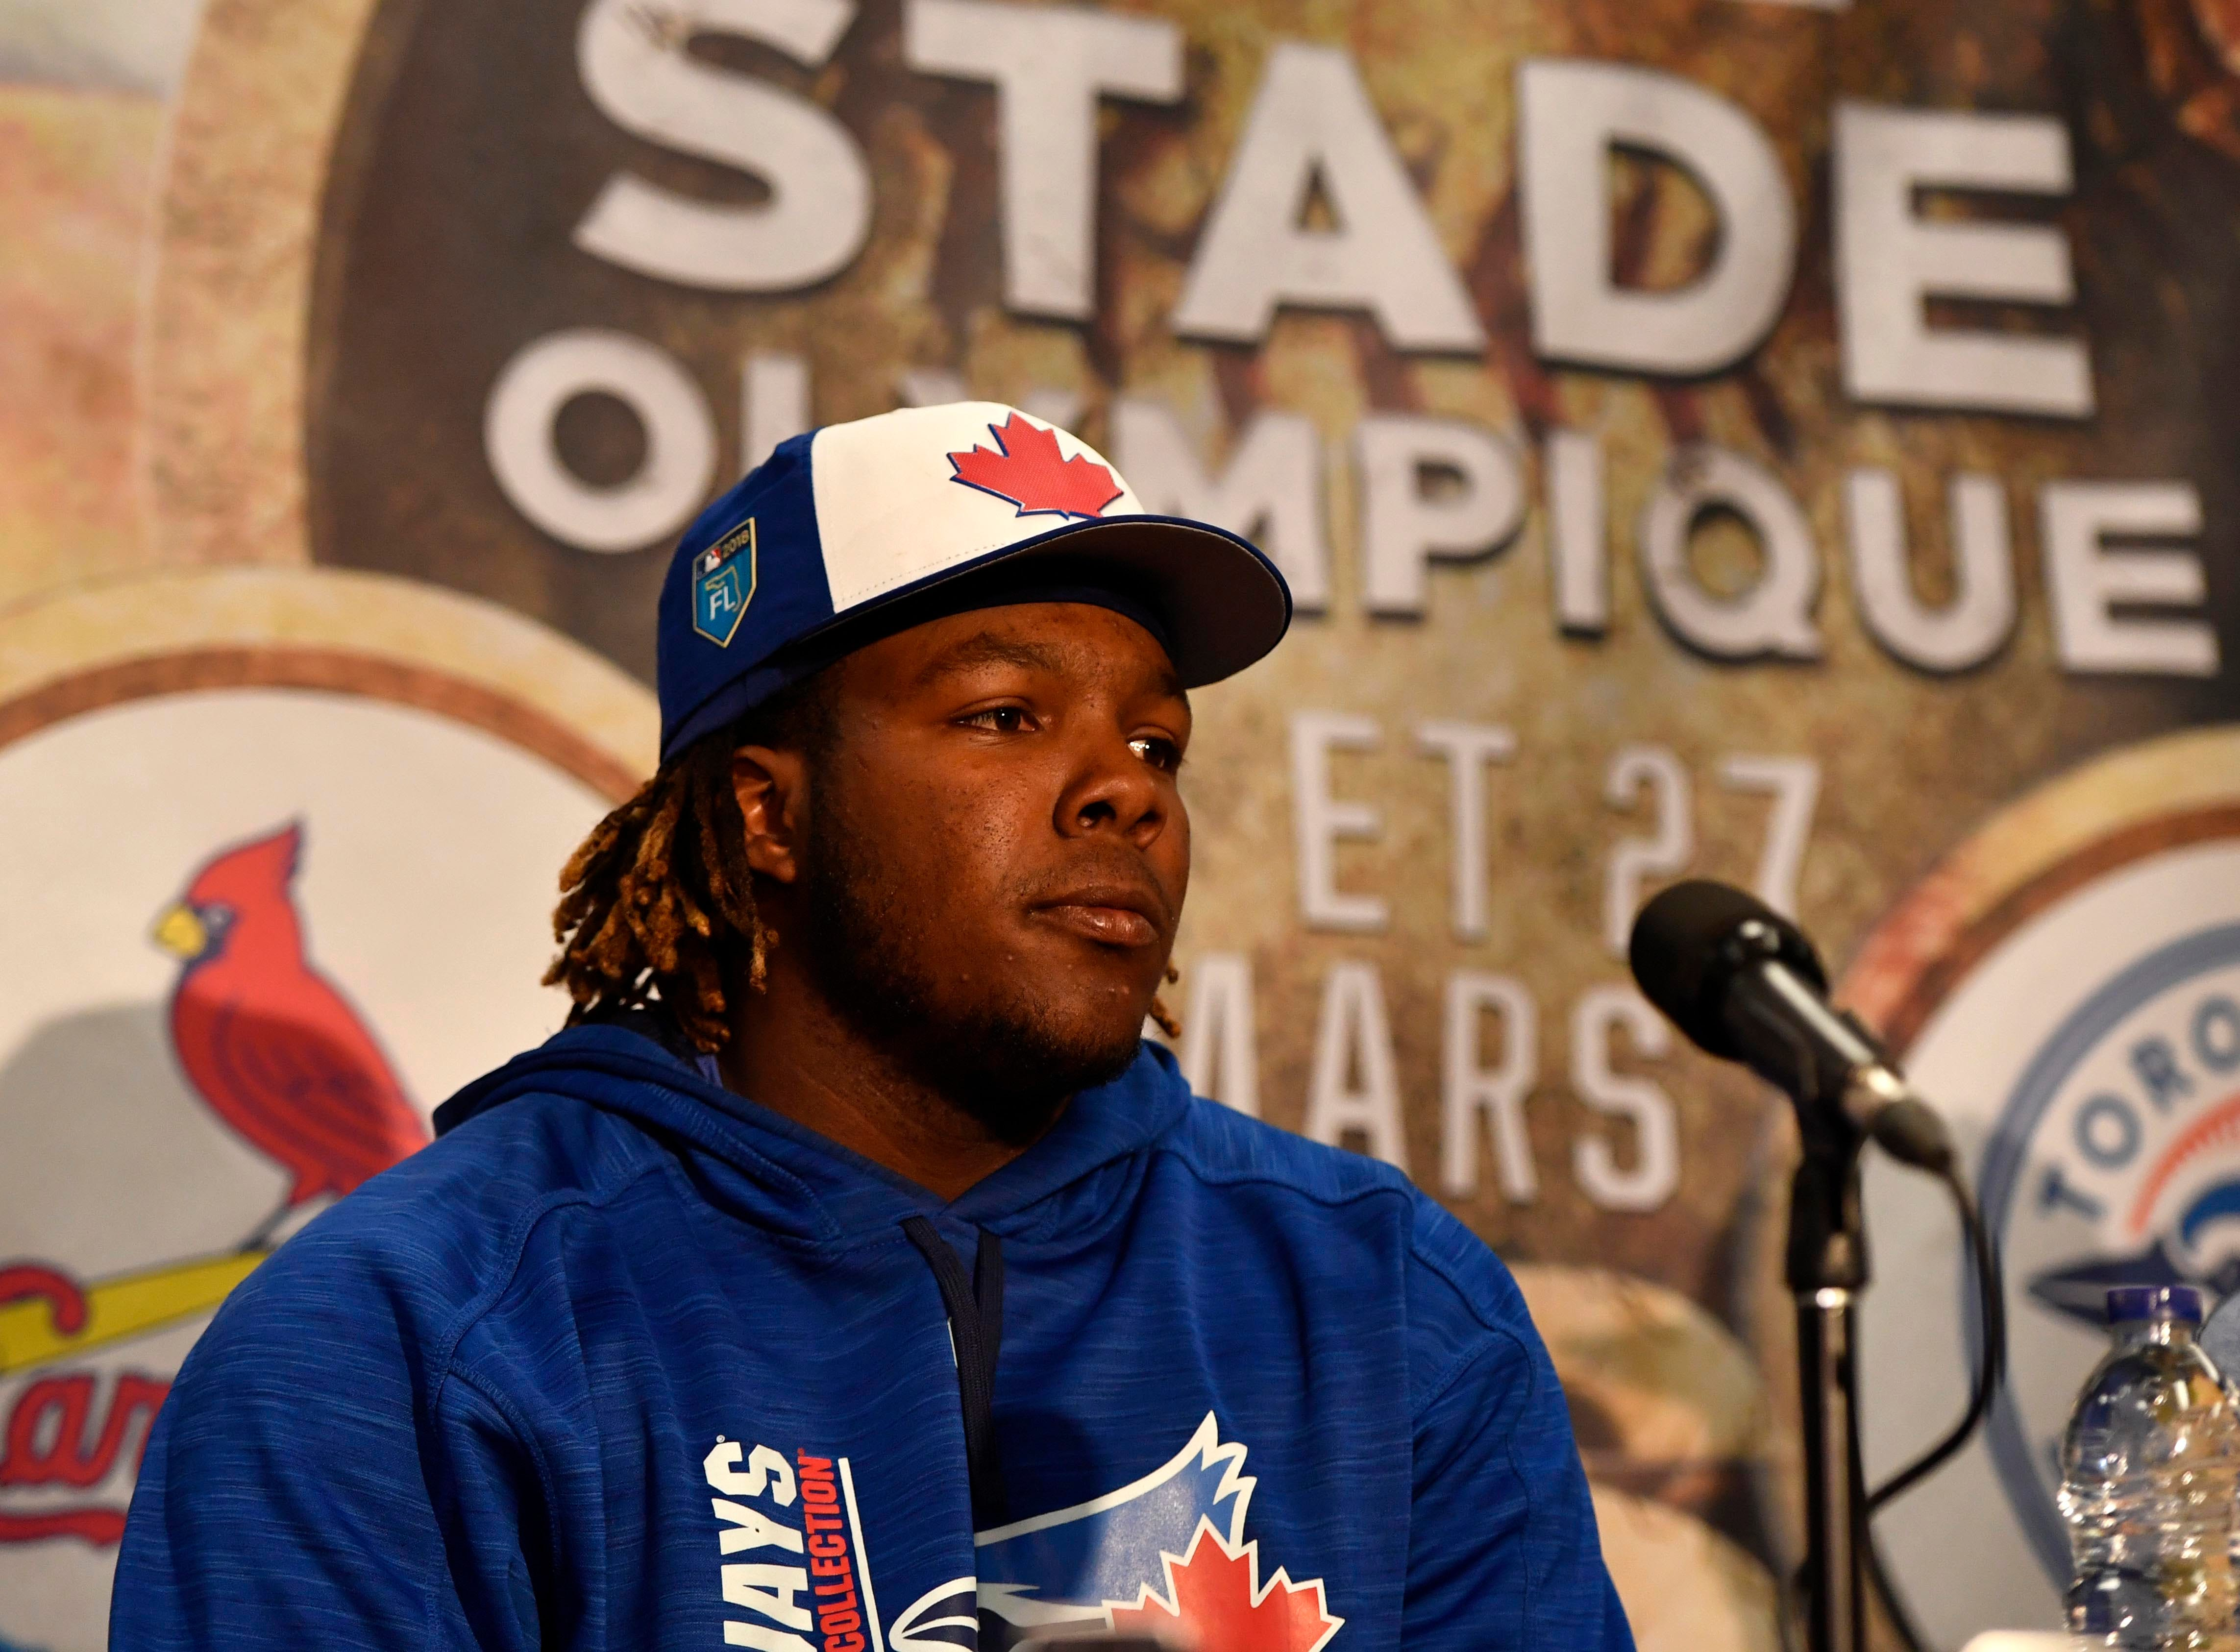 Guerrero Jr. sparks frenzy with Instagram post